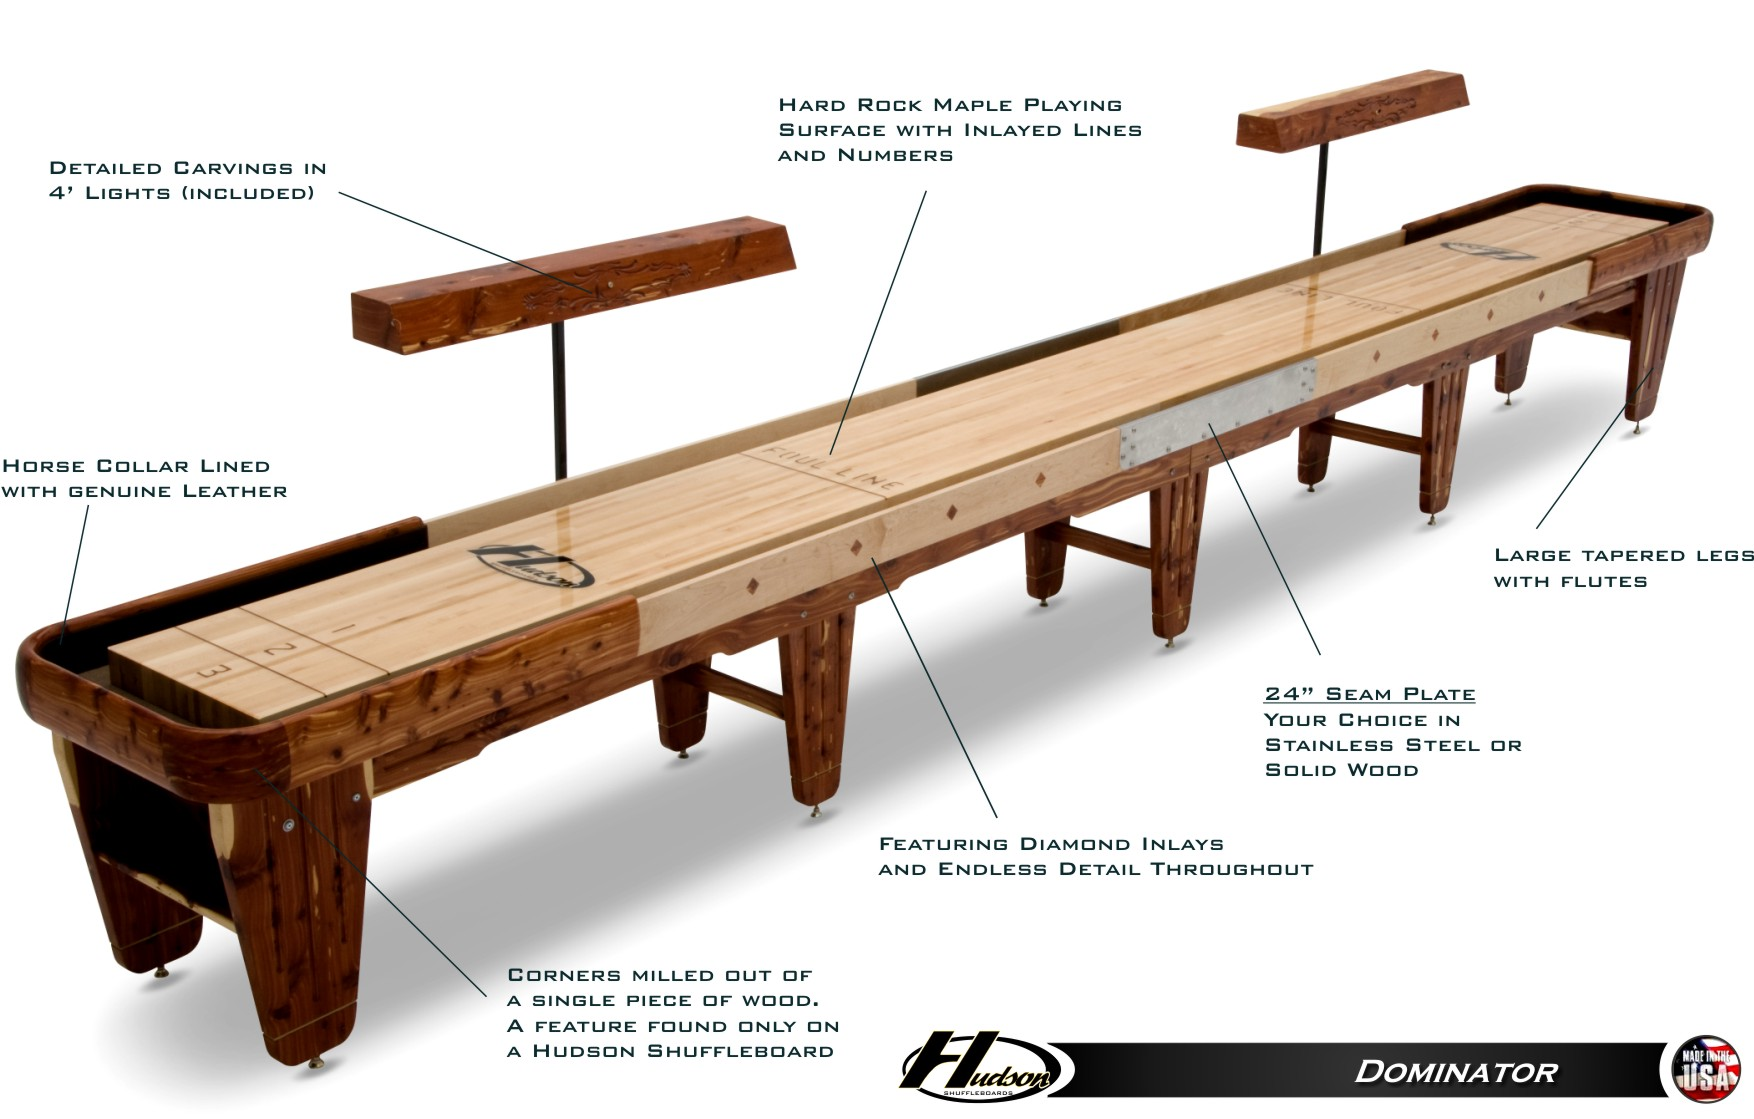 The Dominator Professional Shuffleboard Table